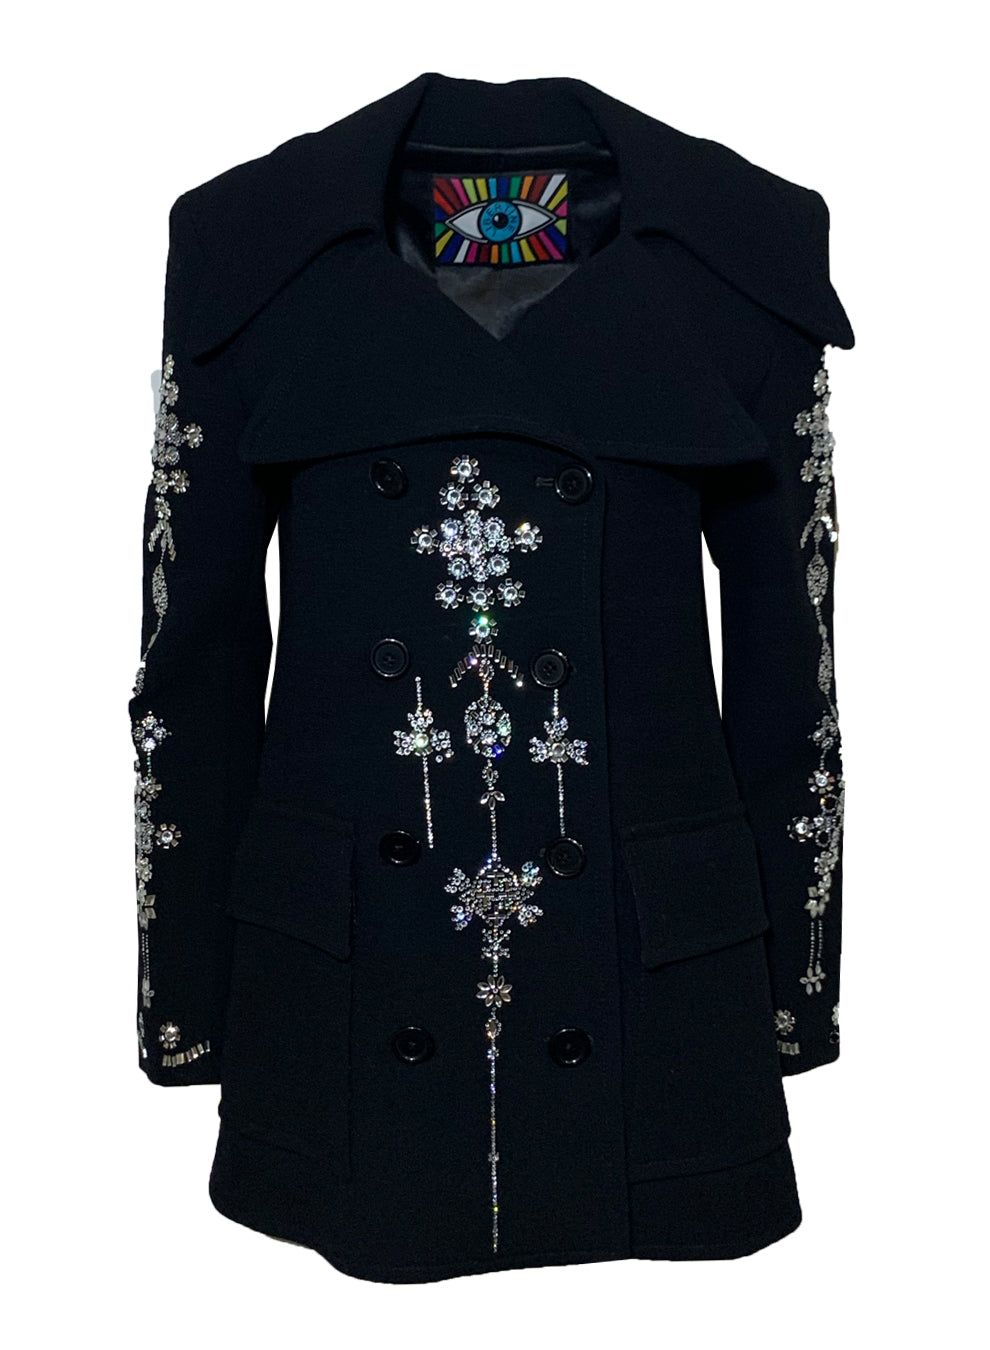 'CHANDELIER' PEACOAT - One of a Kinds - Libertine